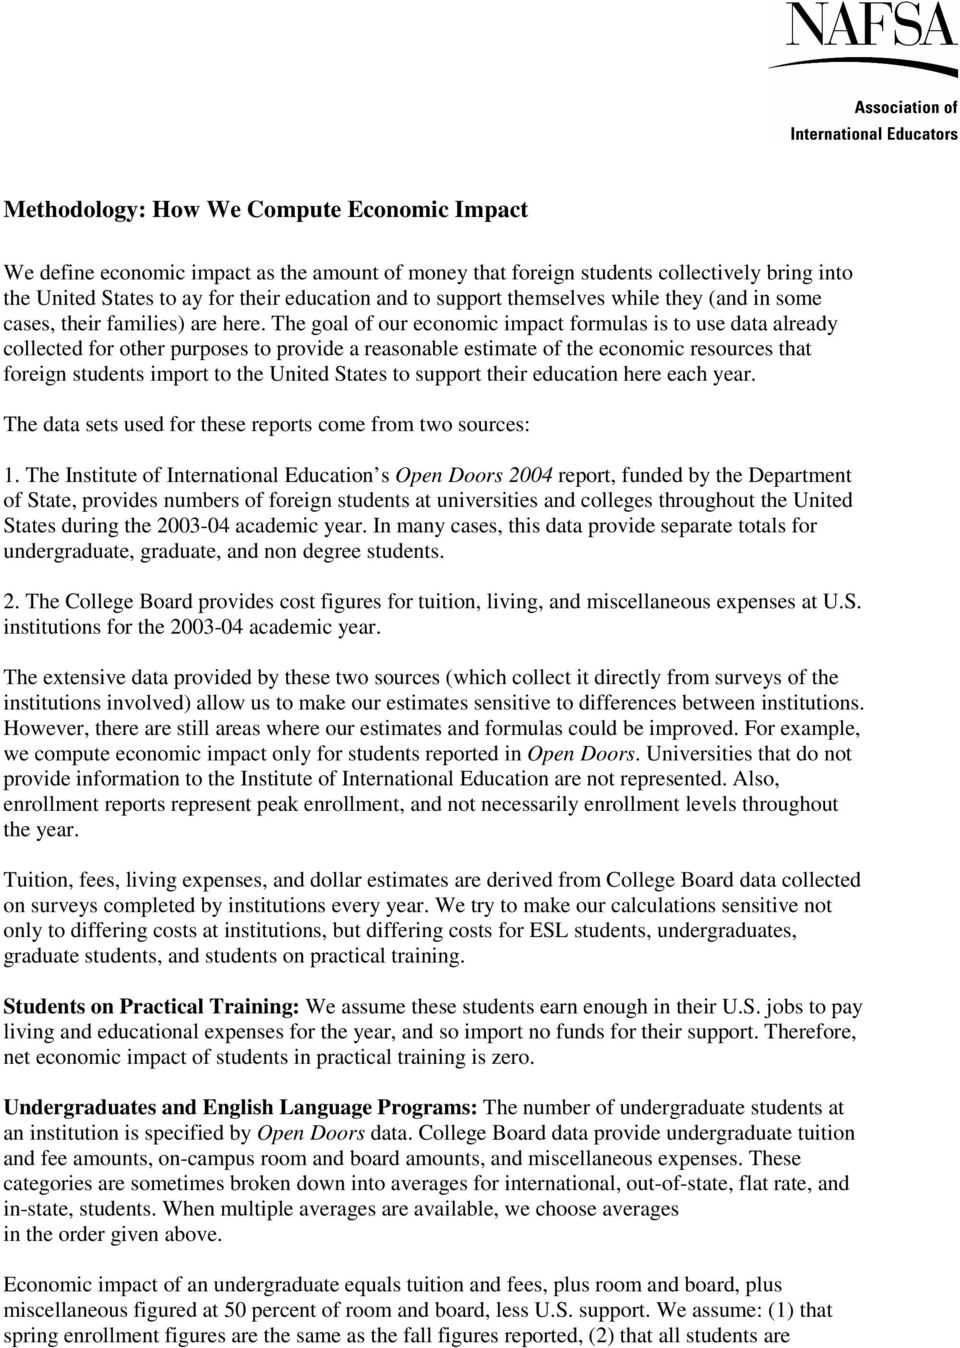 an analysis of the keyhesian economics in the united states Keynesian economics, government shutdowns, and economic growth  the obama administration has been highlighting s&p's analysis  including canada in the 1990s and the united states during .